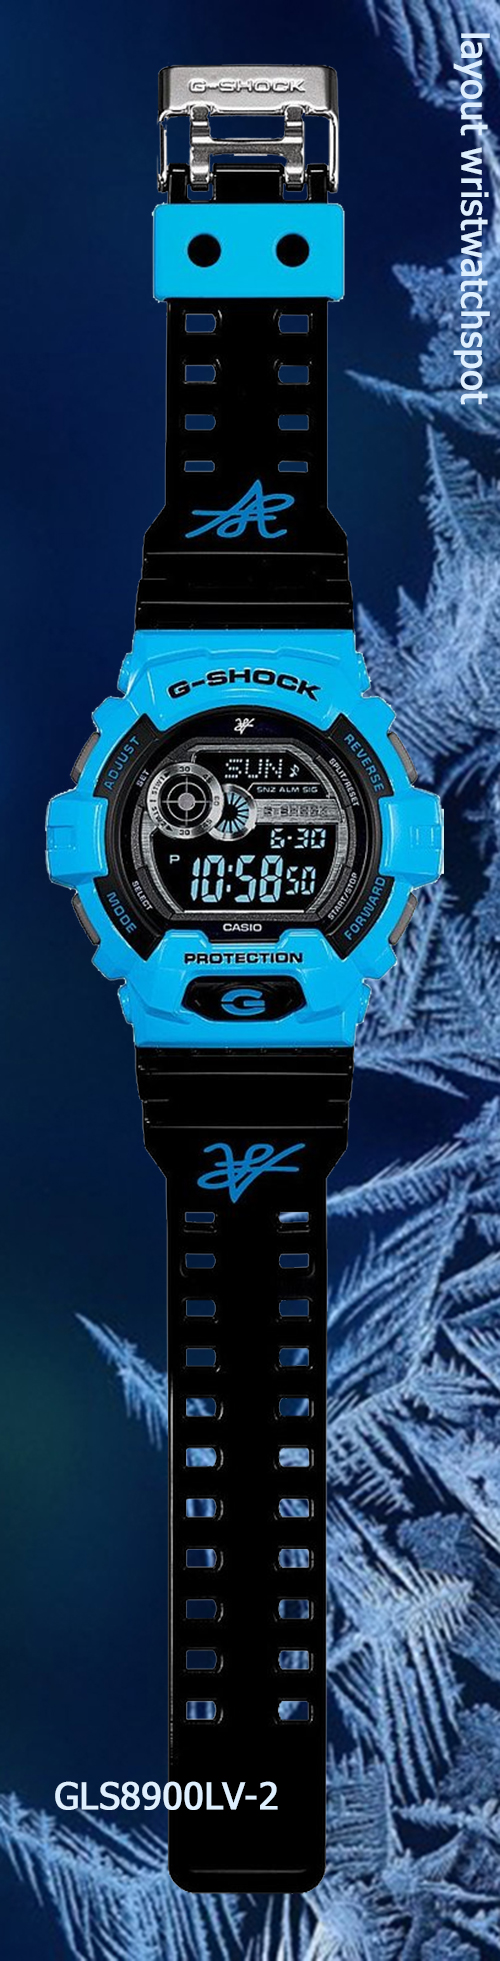 gls8900lv-2_g-shock_full front view collectible blue watch g-lide louie vito